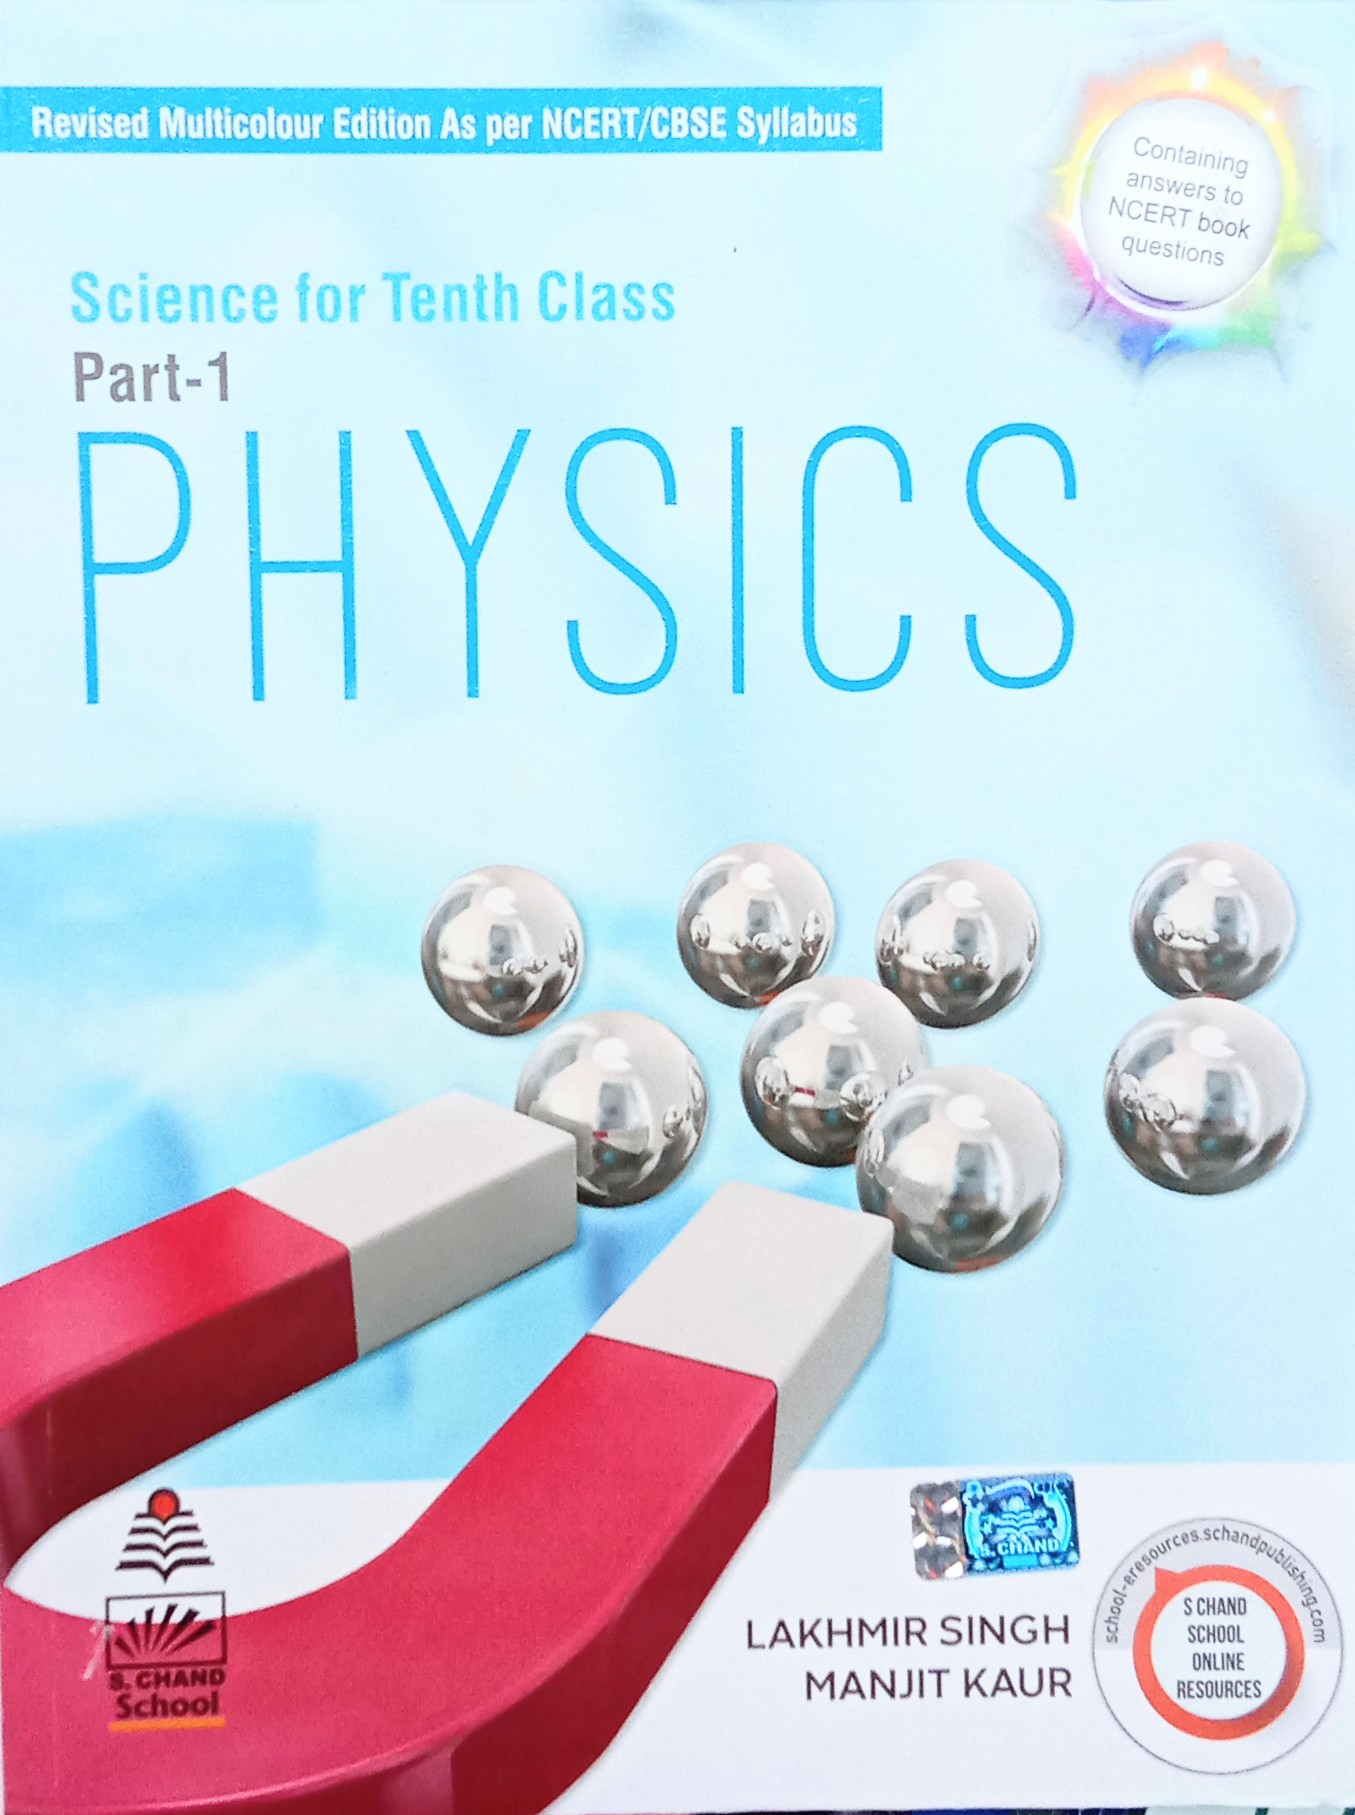 Science for Tenth Class (Part-1) Physics By S. Chand